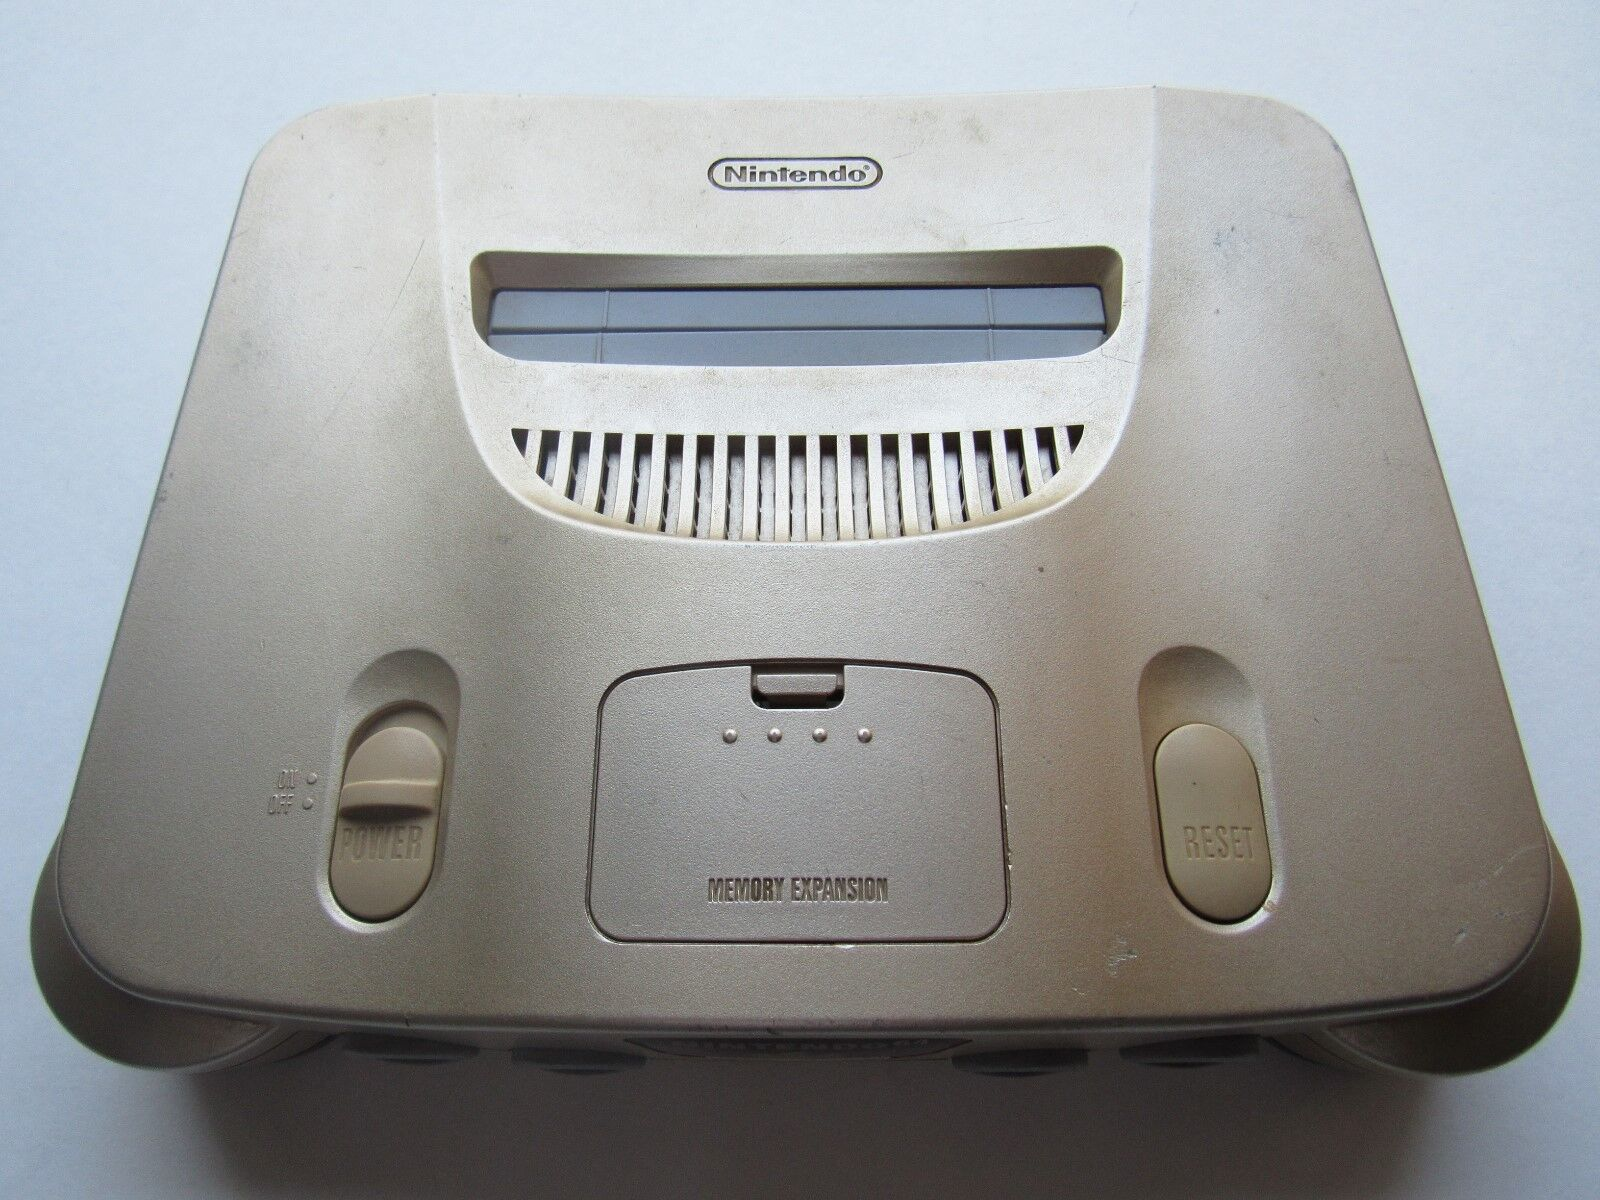 *GOOD* Nintendo 64 N64 OEM Video Game Console System Funtastic Pokemon Gold Rare Gold *Console & Jumper* USA RELEASE